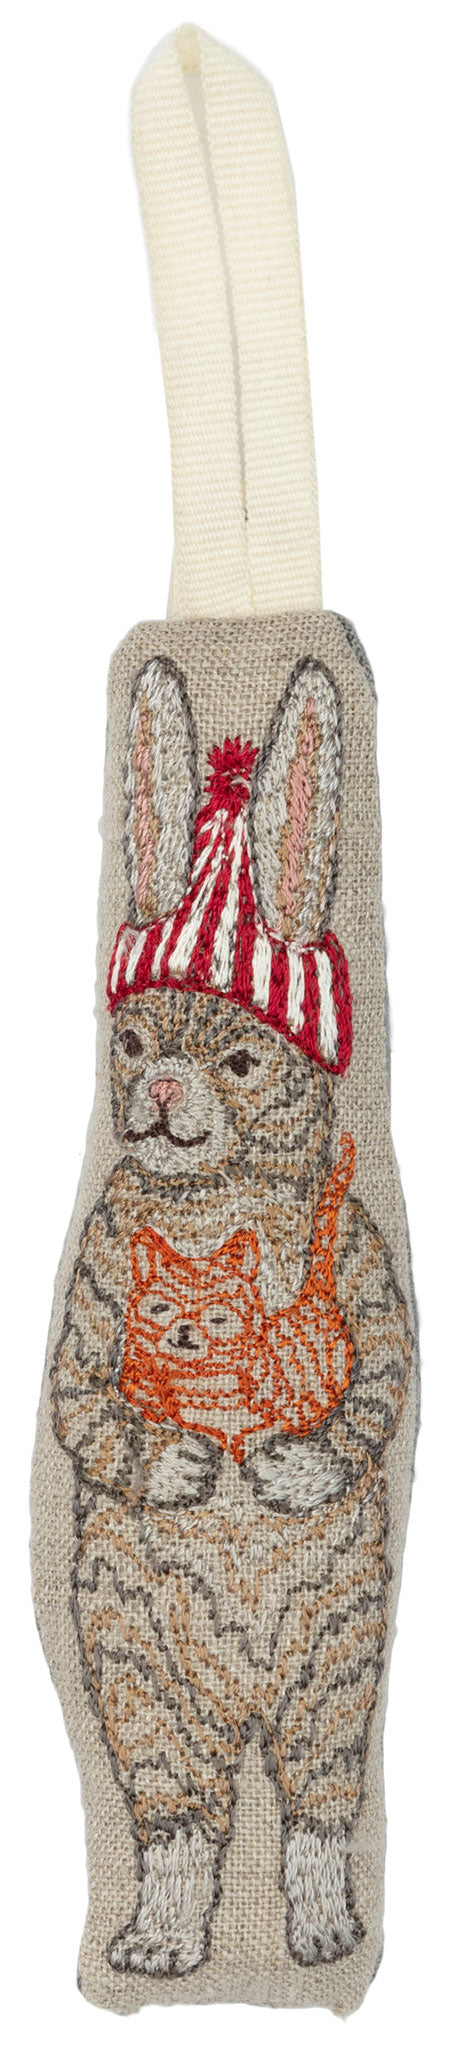 Embroidered and stuffed ornament depicting bunny with red striped beanie cap holding orange cat.